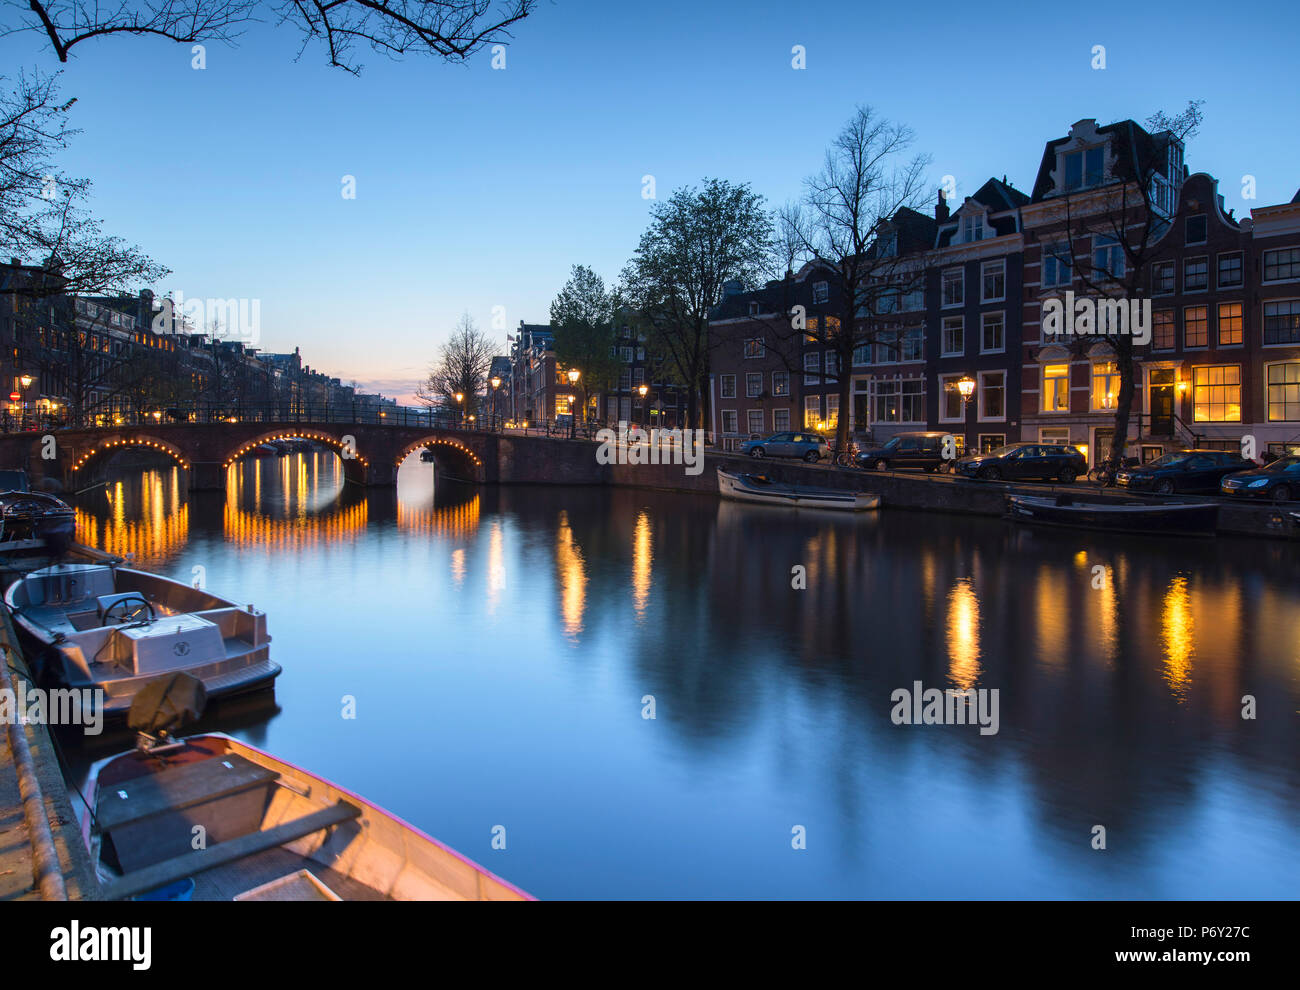 Keizersgracht canal at dusk, Amsterdam, Netherlands Stock Photo